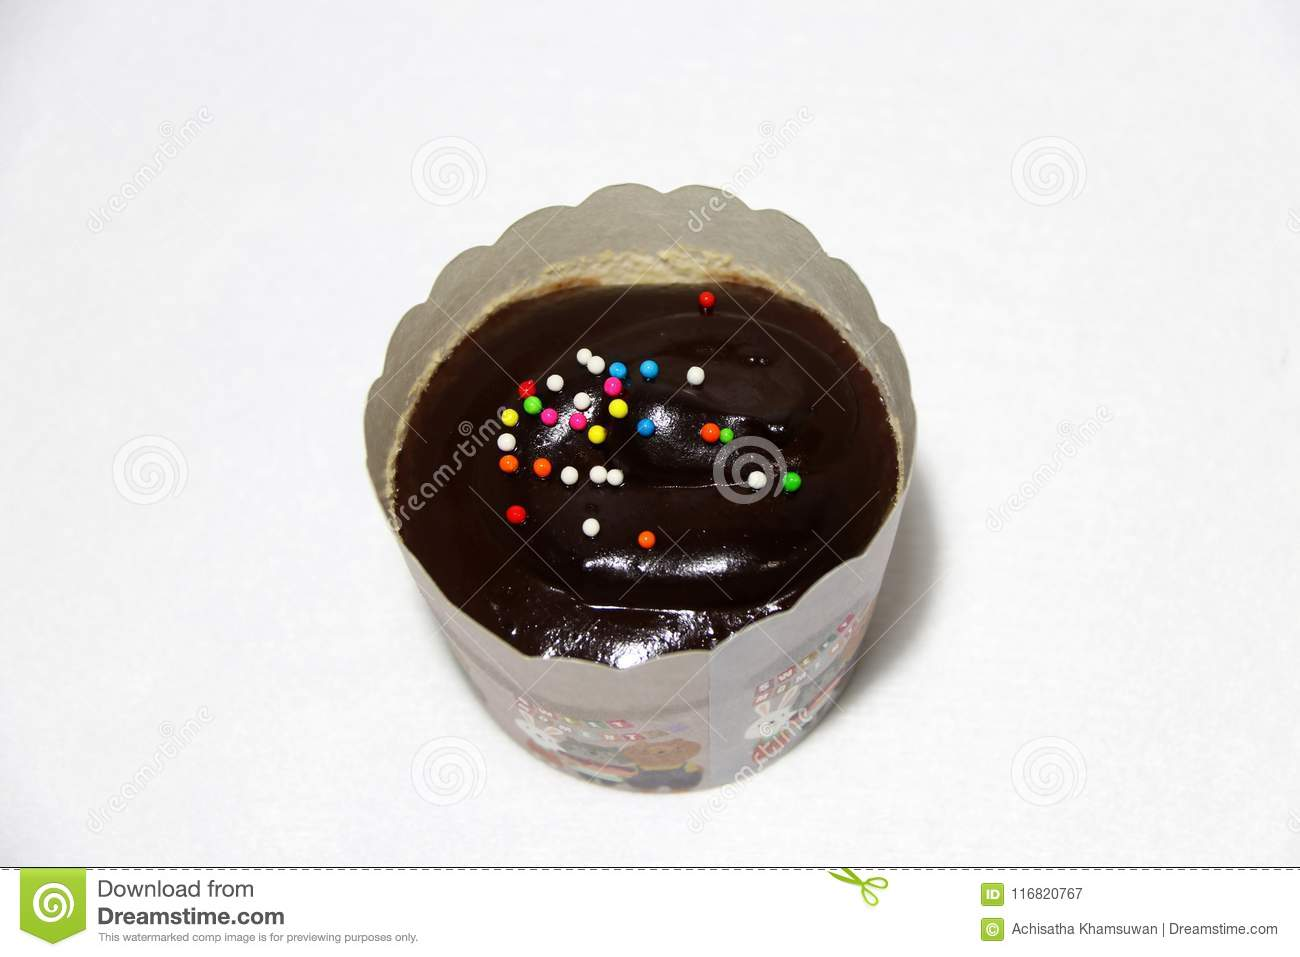 Chocolate flavor of cup cake on the white background with colorful rounded sugar beads on the top.